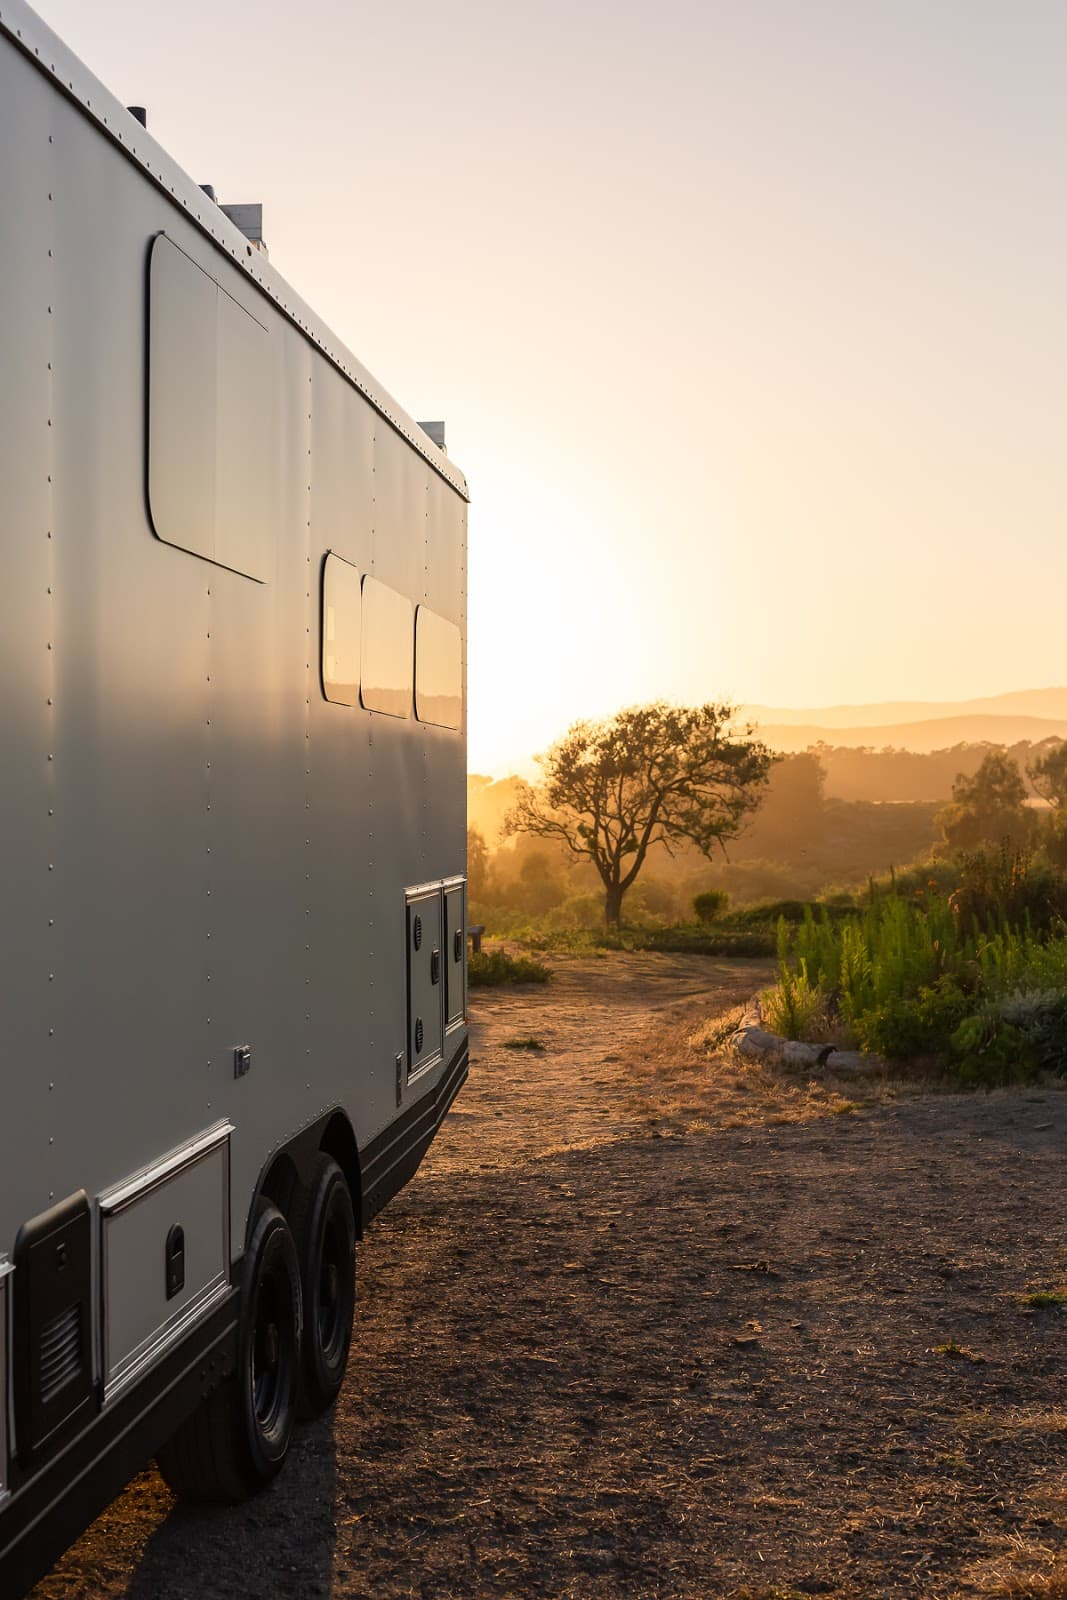 Living Vehicle Travel Trailer Parked With Sunset